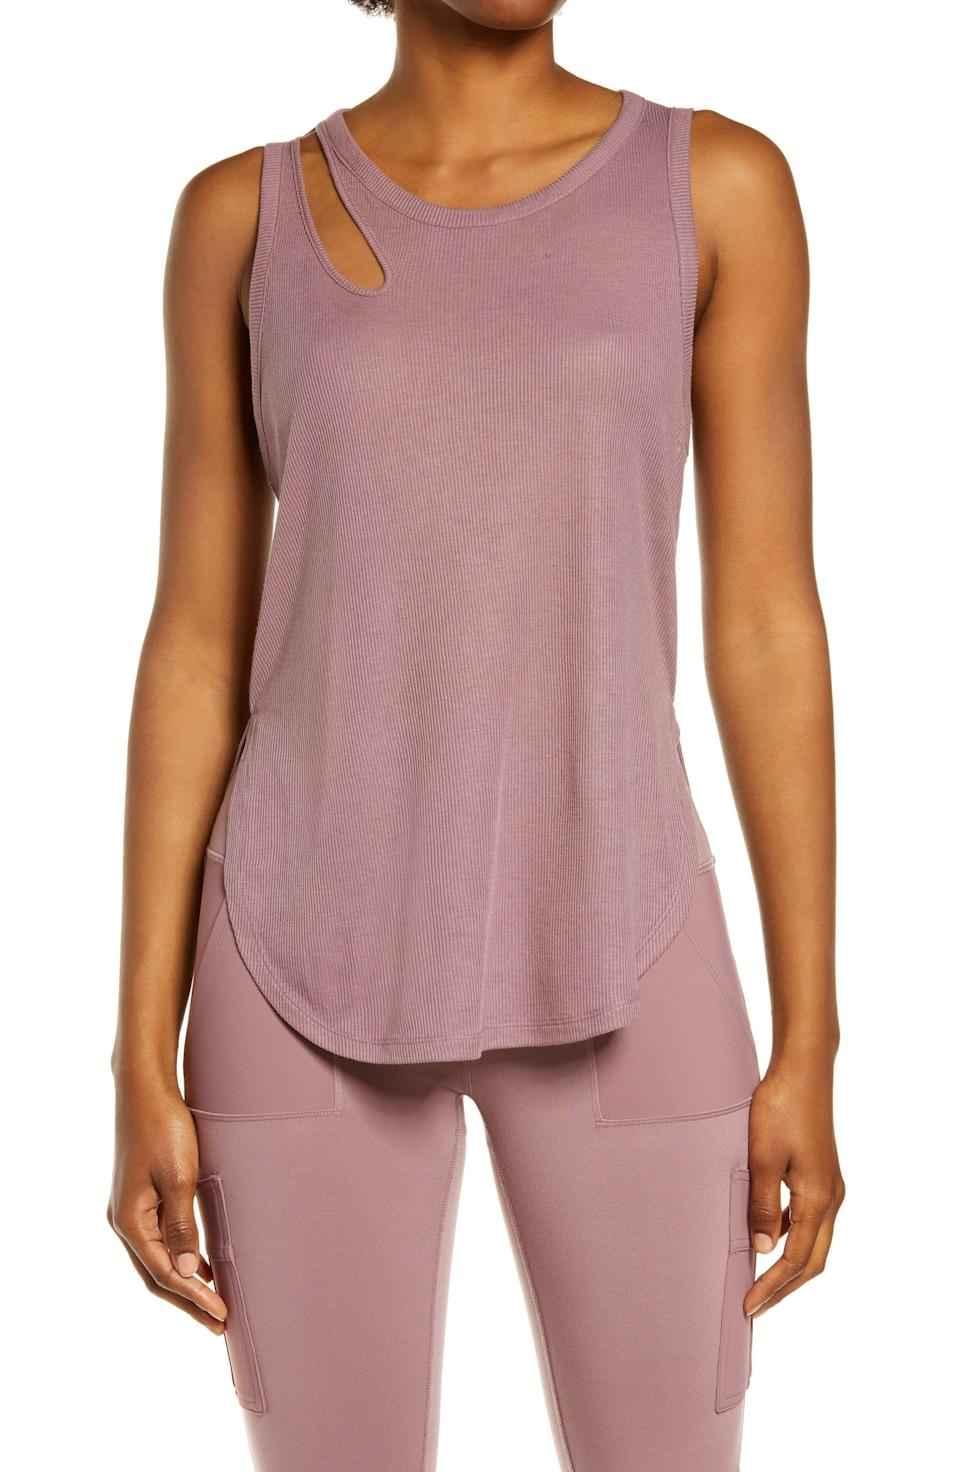 """<p><strong>Alo</strong></p><p>nordstrom.com</p><p><strong>$48.00</strong></p><p><a href=""""https://go.redirectingat.com?id=74968X1596630&url=https%3A%2F%2Fwww.nordstrom.com%2Fs%2Falo-peak-cutout-tank%2F5913181&sref=https%3A%2F%2Fwww.prevention.com%2Ffitness%2Fworkout-clothes-gear%2Fg37542513%2Fworkout-tops-for-women%2F"""" rel=""""nofollow noopener"""" target=""""_blank"""" data-ylk=""""slk:Shop Now"""" class=""""link rapid-noclick-resp"""">Shop Now</a></p><p>This sleeveless tank is <strong>made from a soft ribbed fabric that's lightweight and stretchy</strong>. The features include an asymmetrical cut out in the front and back, as well as a high-low hem with side slits. Pair it with your favorite <a href=""""https://www.prevention.com/fitness/workout-clothes-gear/g34943640/plus-size-workout-clothes/"""" rel=""""nofollow noopener"""" target=""""_blank"""" data-ylk=""""slk:sports bra"""" class=""""link rapid-noclick-resp"""">sports bra</a> and biker shorts for a complete look. </p>"""